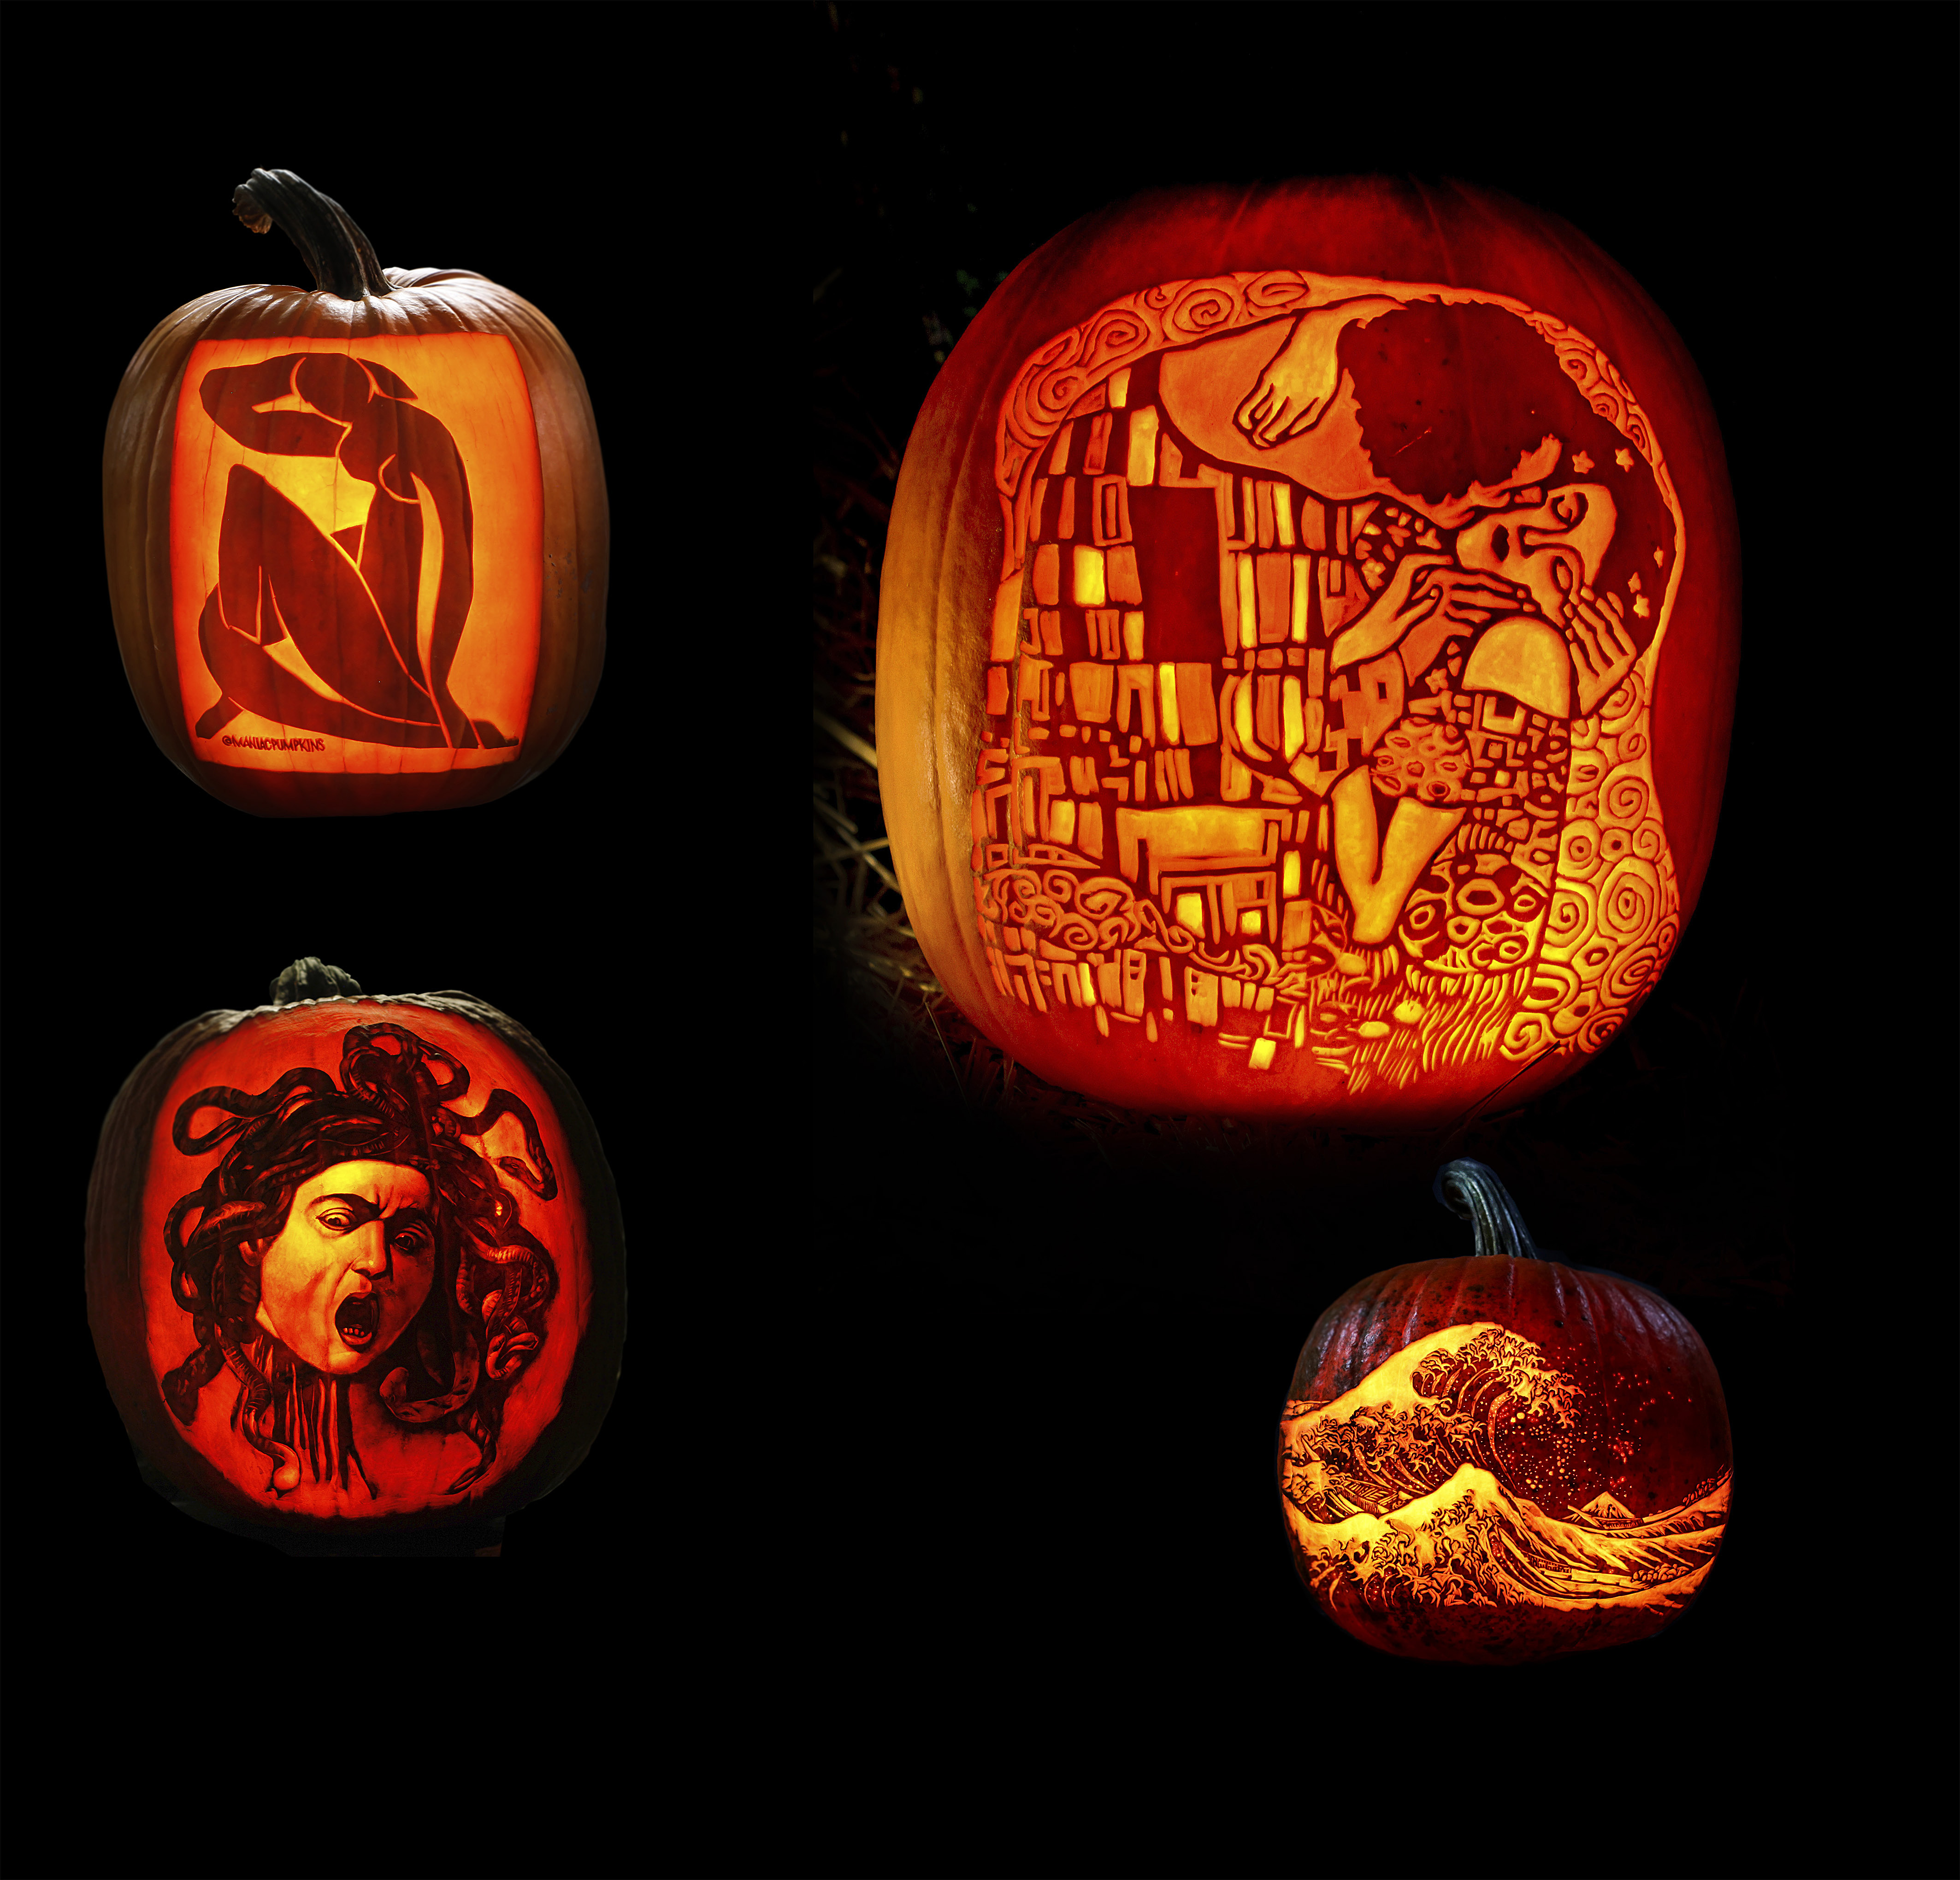 pumpkins carved to look like various famous paintings